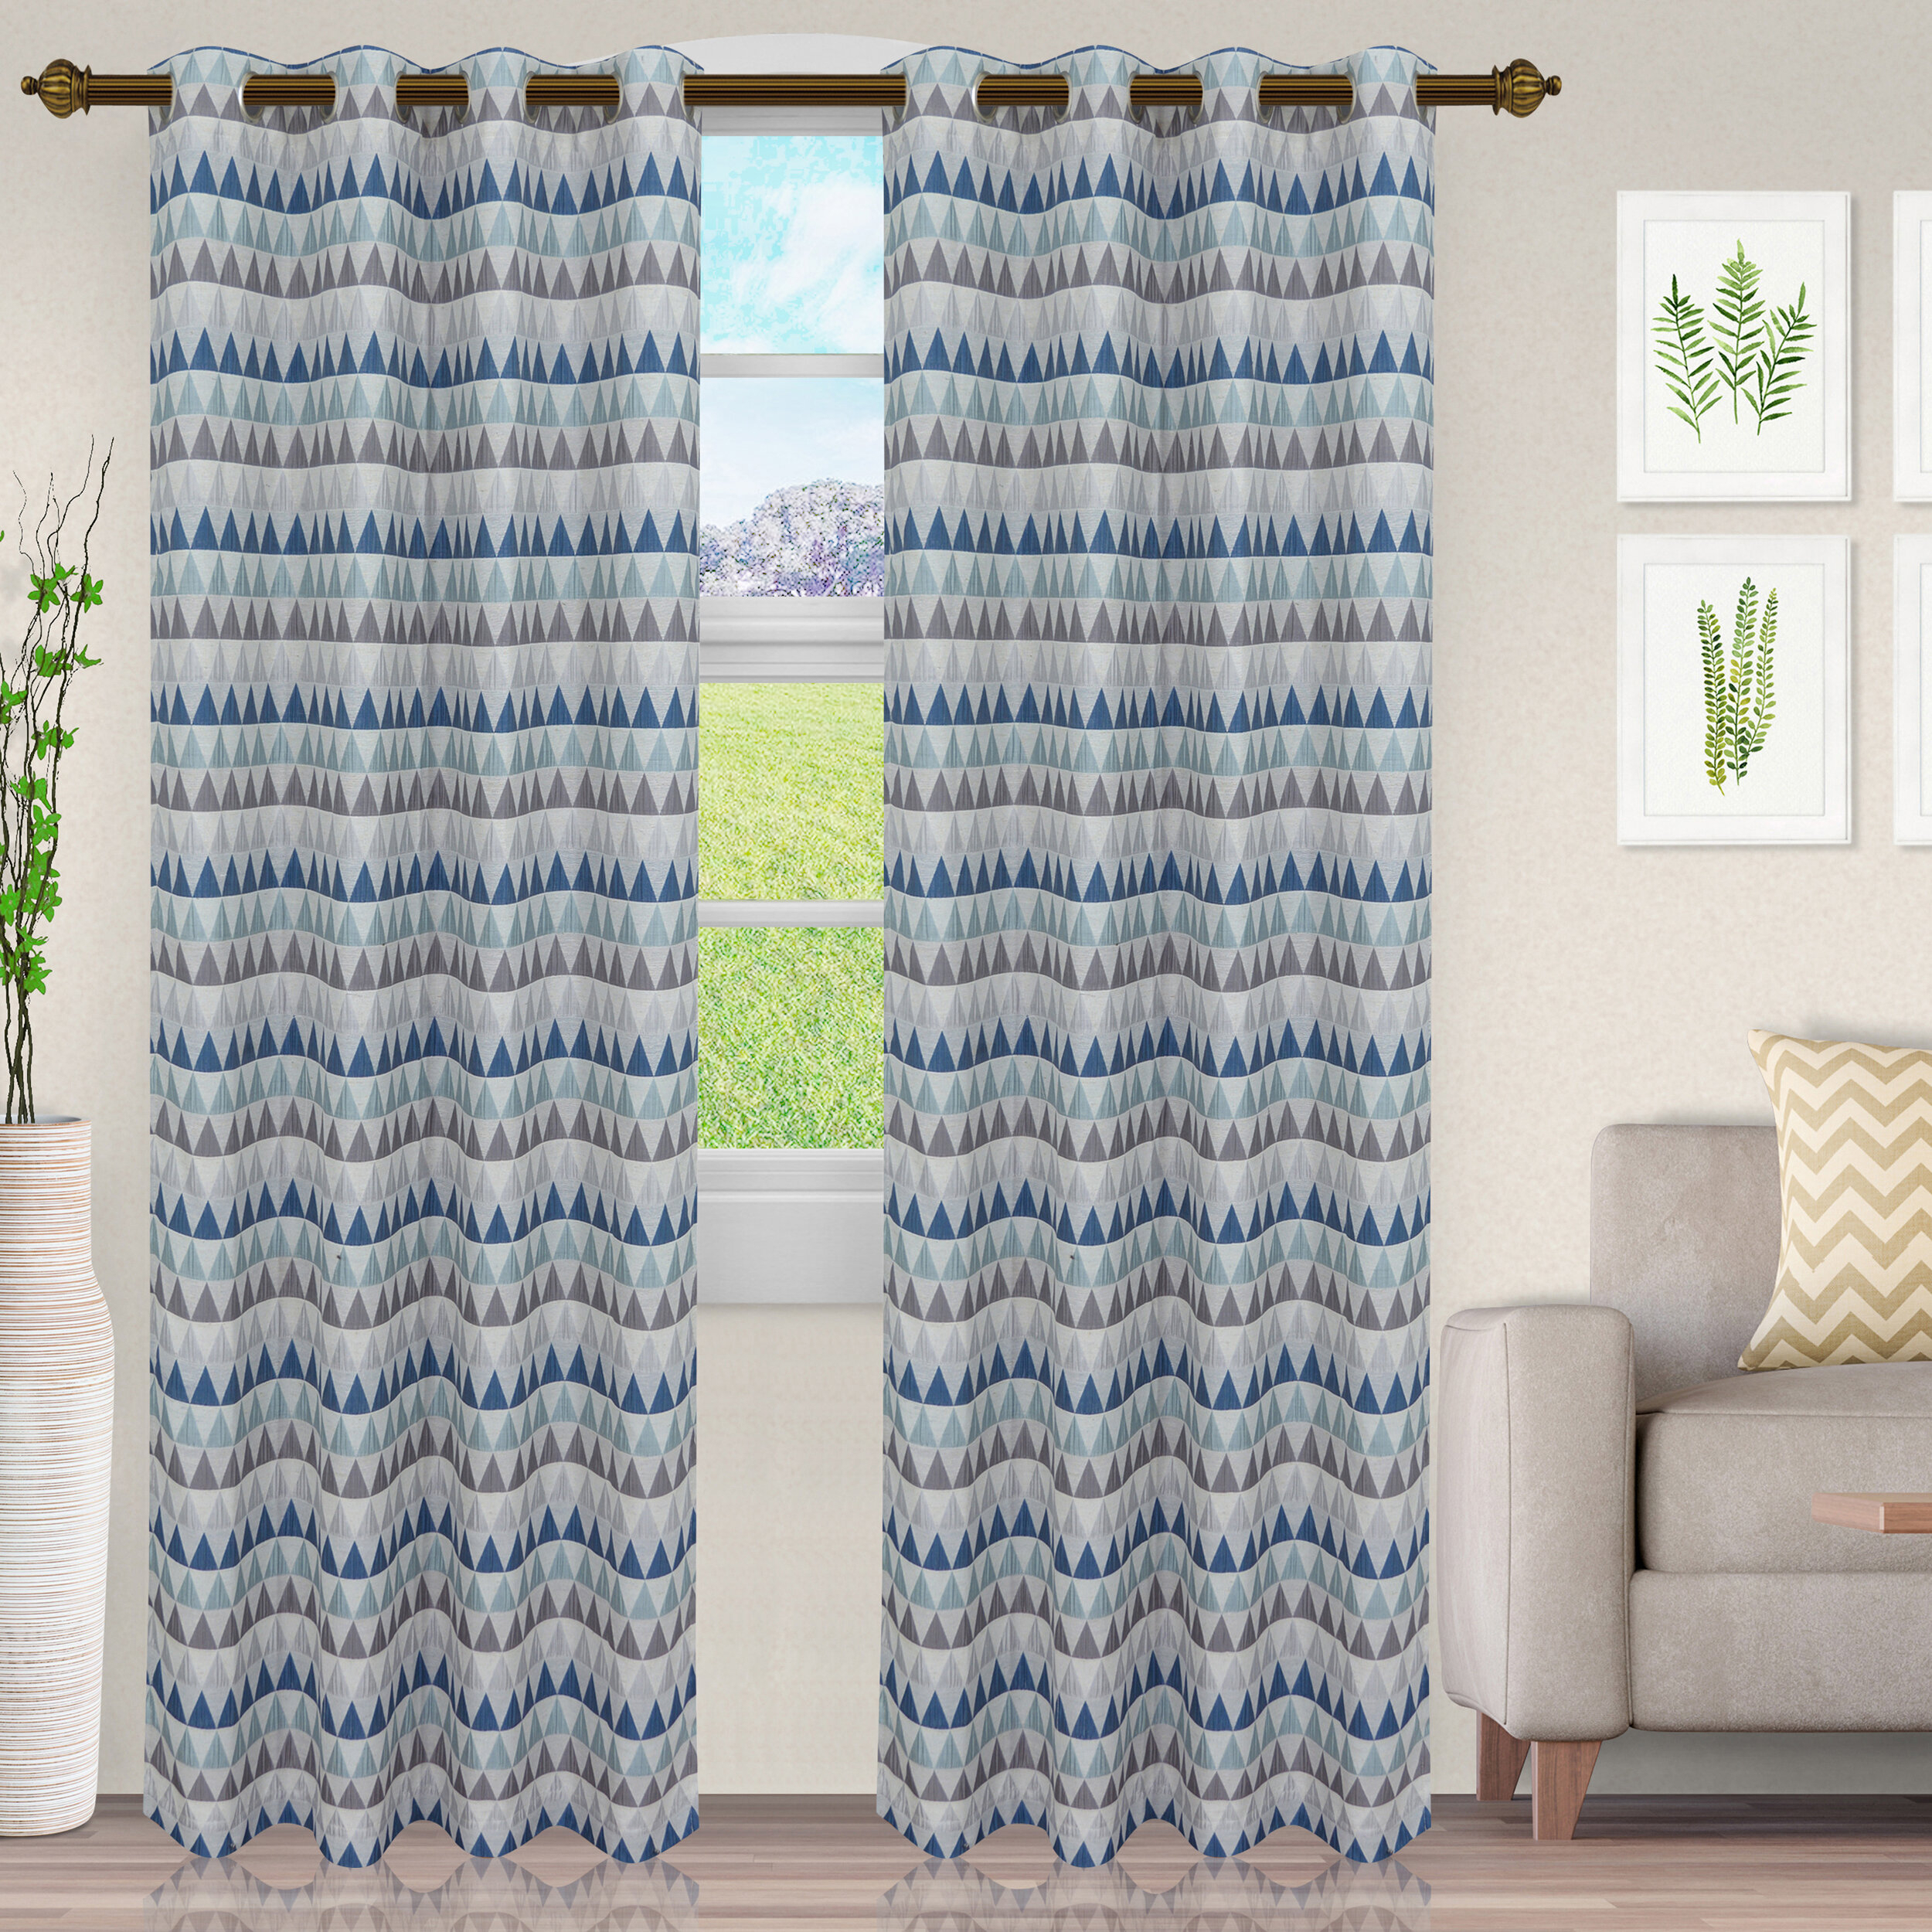 Didi Haus&home Marowyne Geometric Semi-Sheer Grommet Curtain Panels throughout Luxury Collection Venetian Sheer Curtain Panel Pairs (Image 8 of 20)